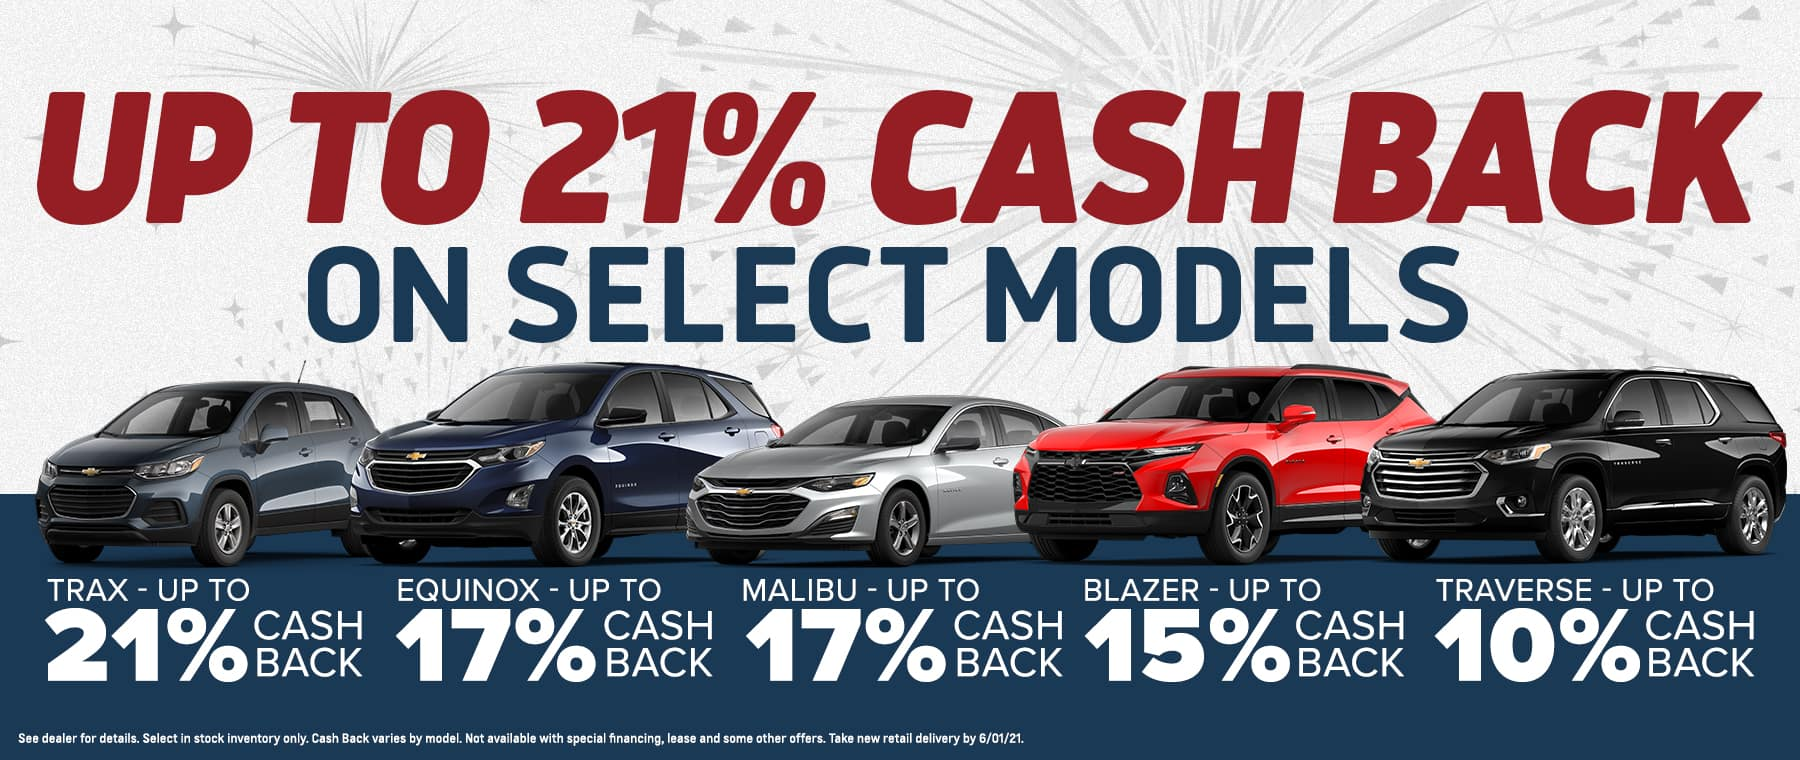 Up to 21% Cashback